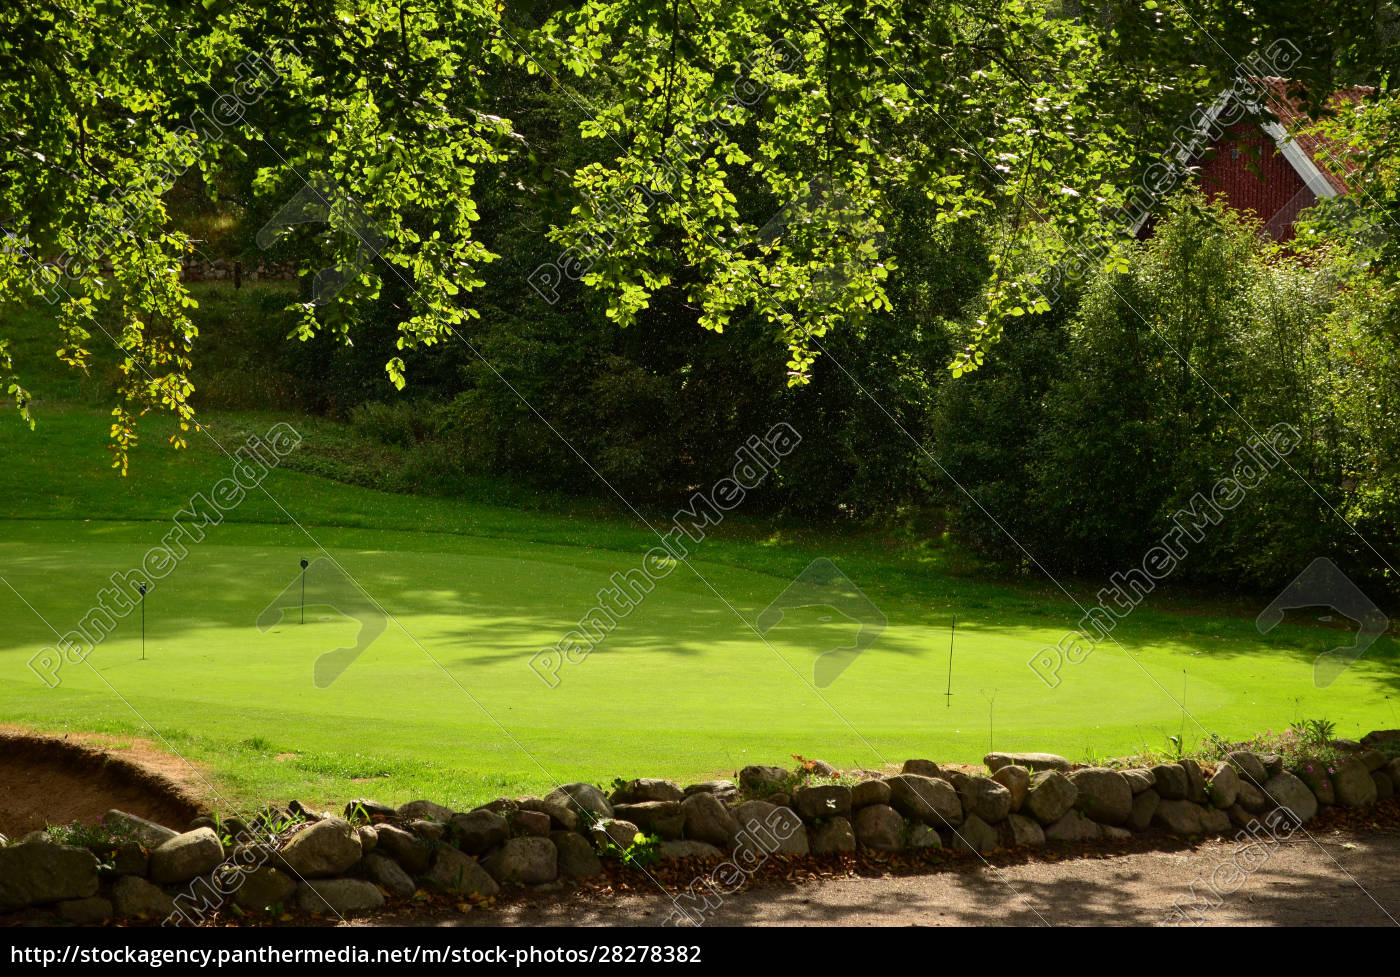 grassy, lawn, prepared, for, golf, in - 28278382